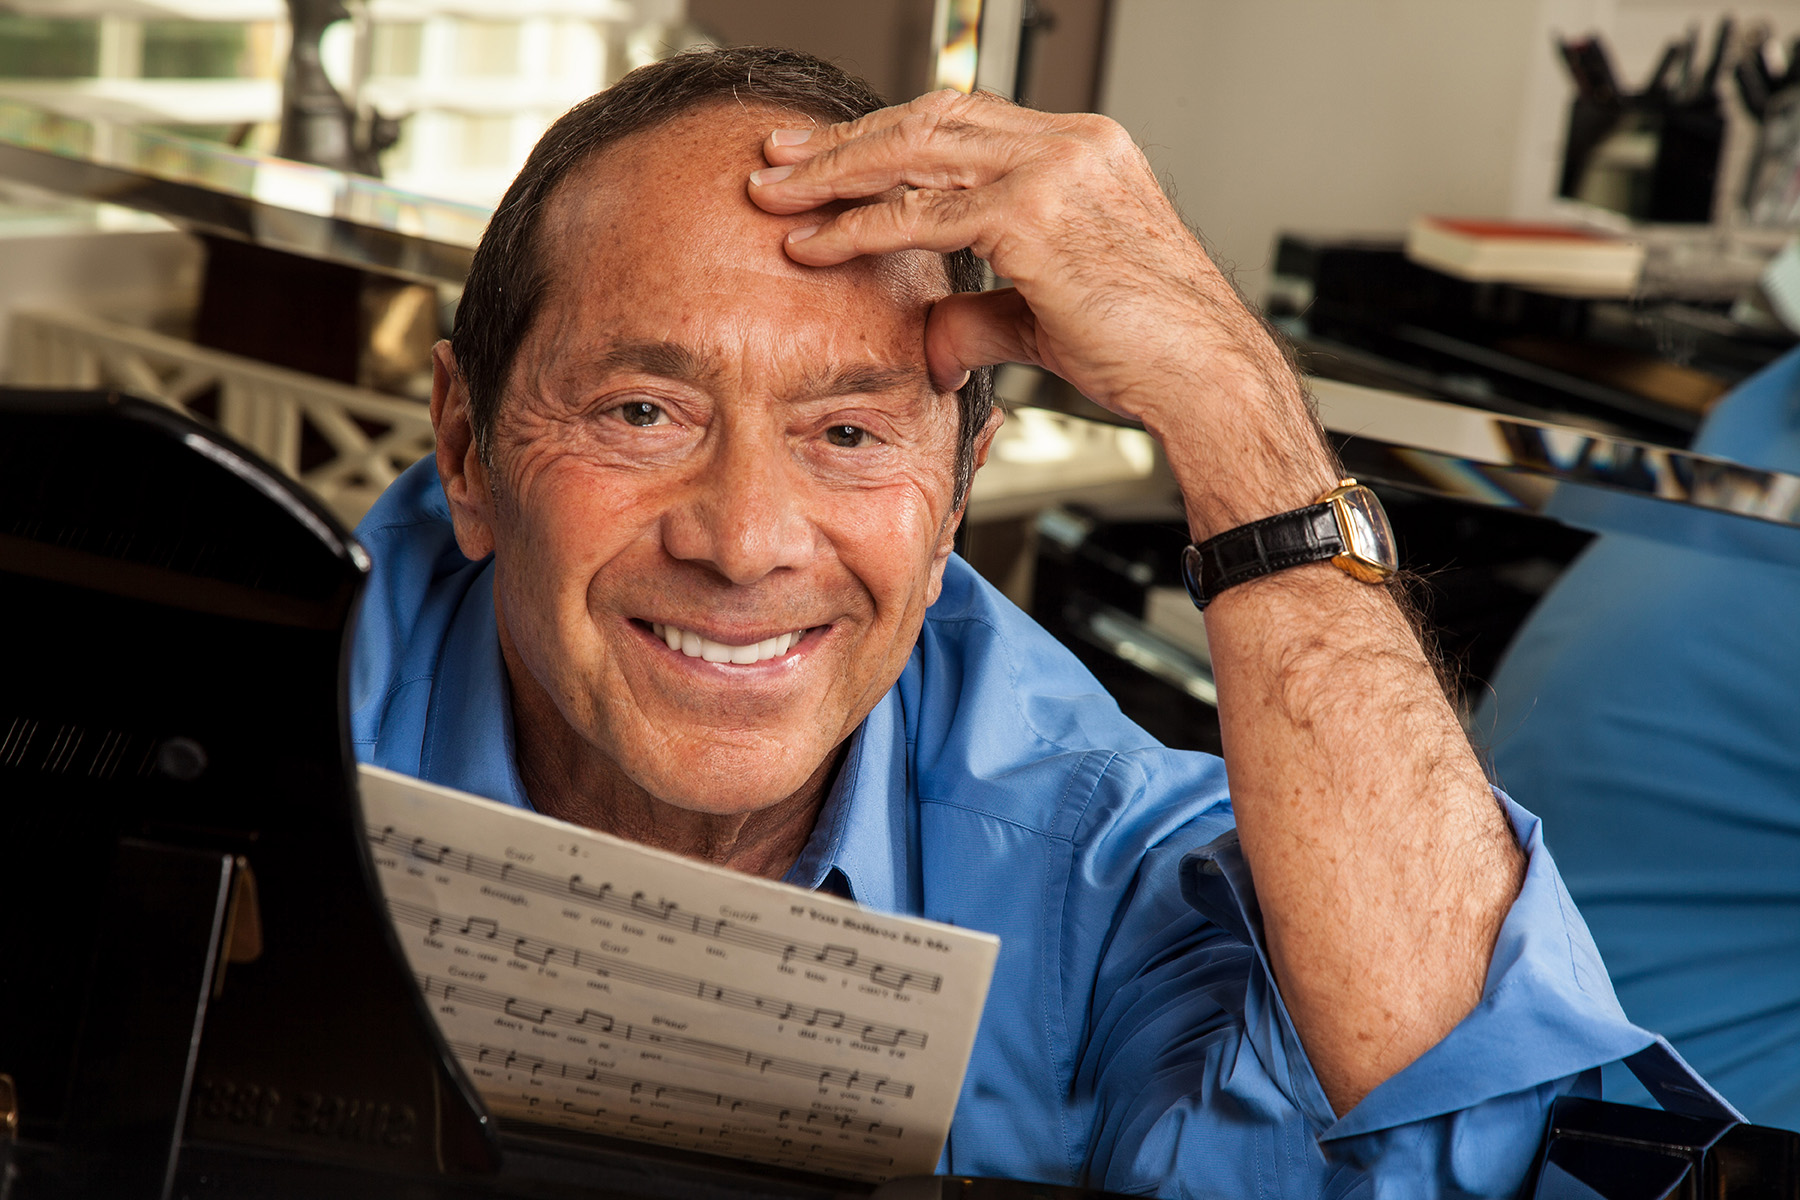 MANUELLO PAGANELLI  Photographer  / PORTRAITS, EDITORIAL, CELEBRITIES / SPORTS , TRAVEL, ADVENTURE / LIFESTYLE, FASHION /MAGAZINE, WORKSHOPS - HOLLYWOOD, SAN FRANCISCO, LOS ANGELES California - PORTRAIT -Paul_Anka_singer_crooner